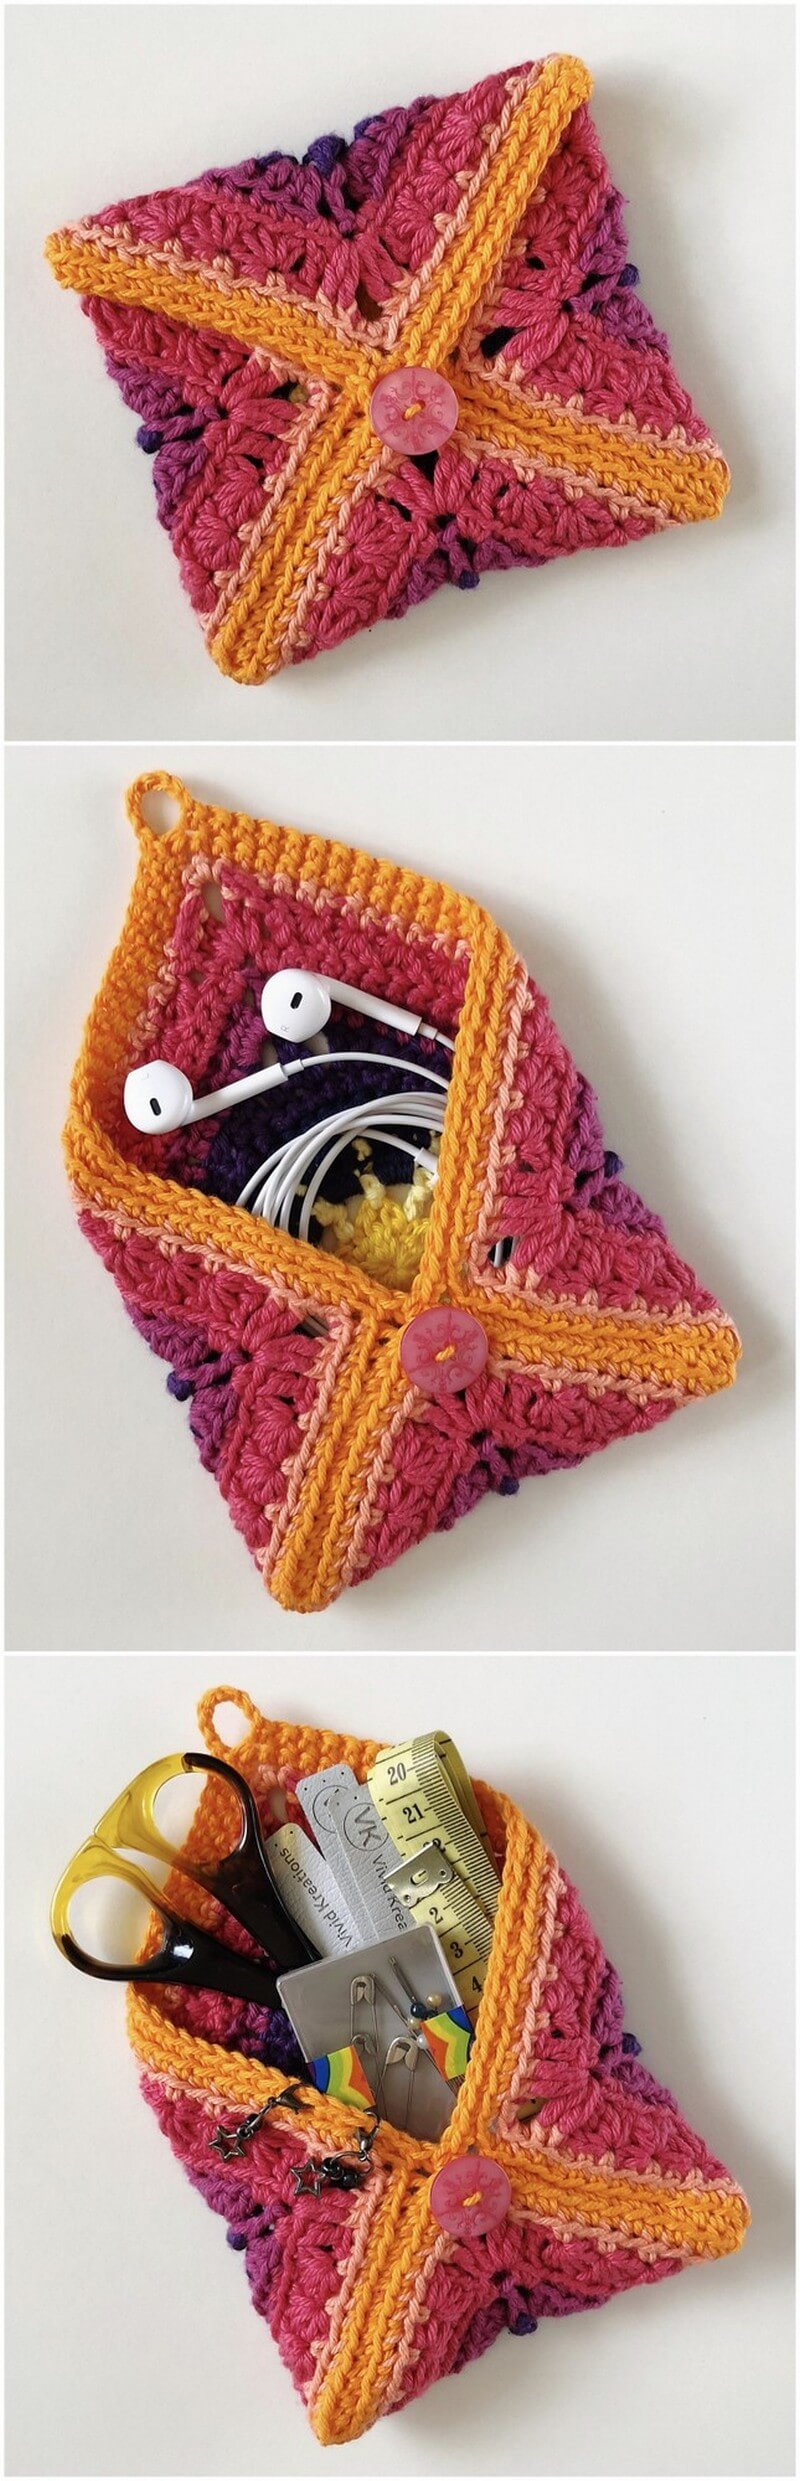 Crochet Bag Pattern (22)